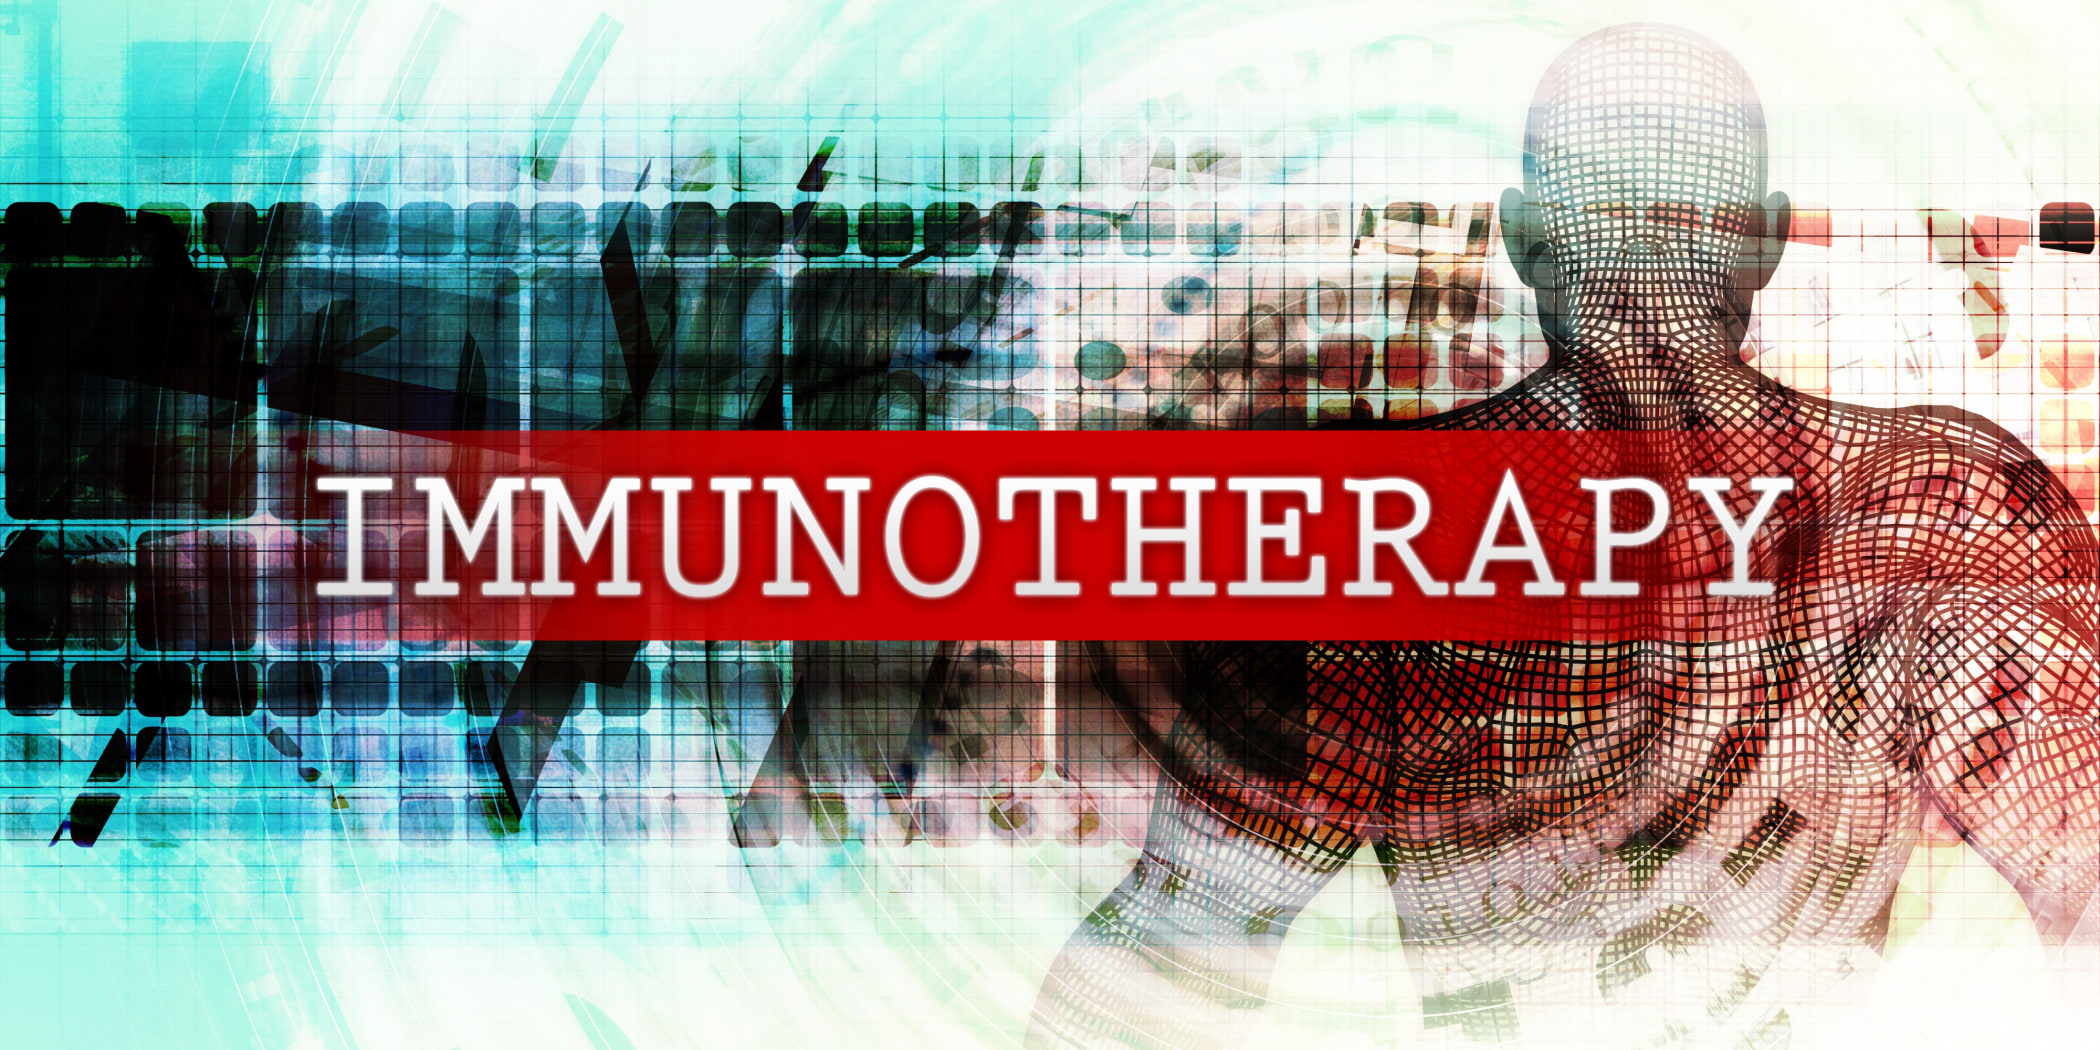 Yale Cancer Center scientists advise caution in immunotherapy research